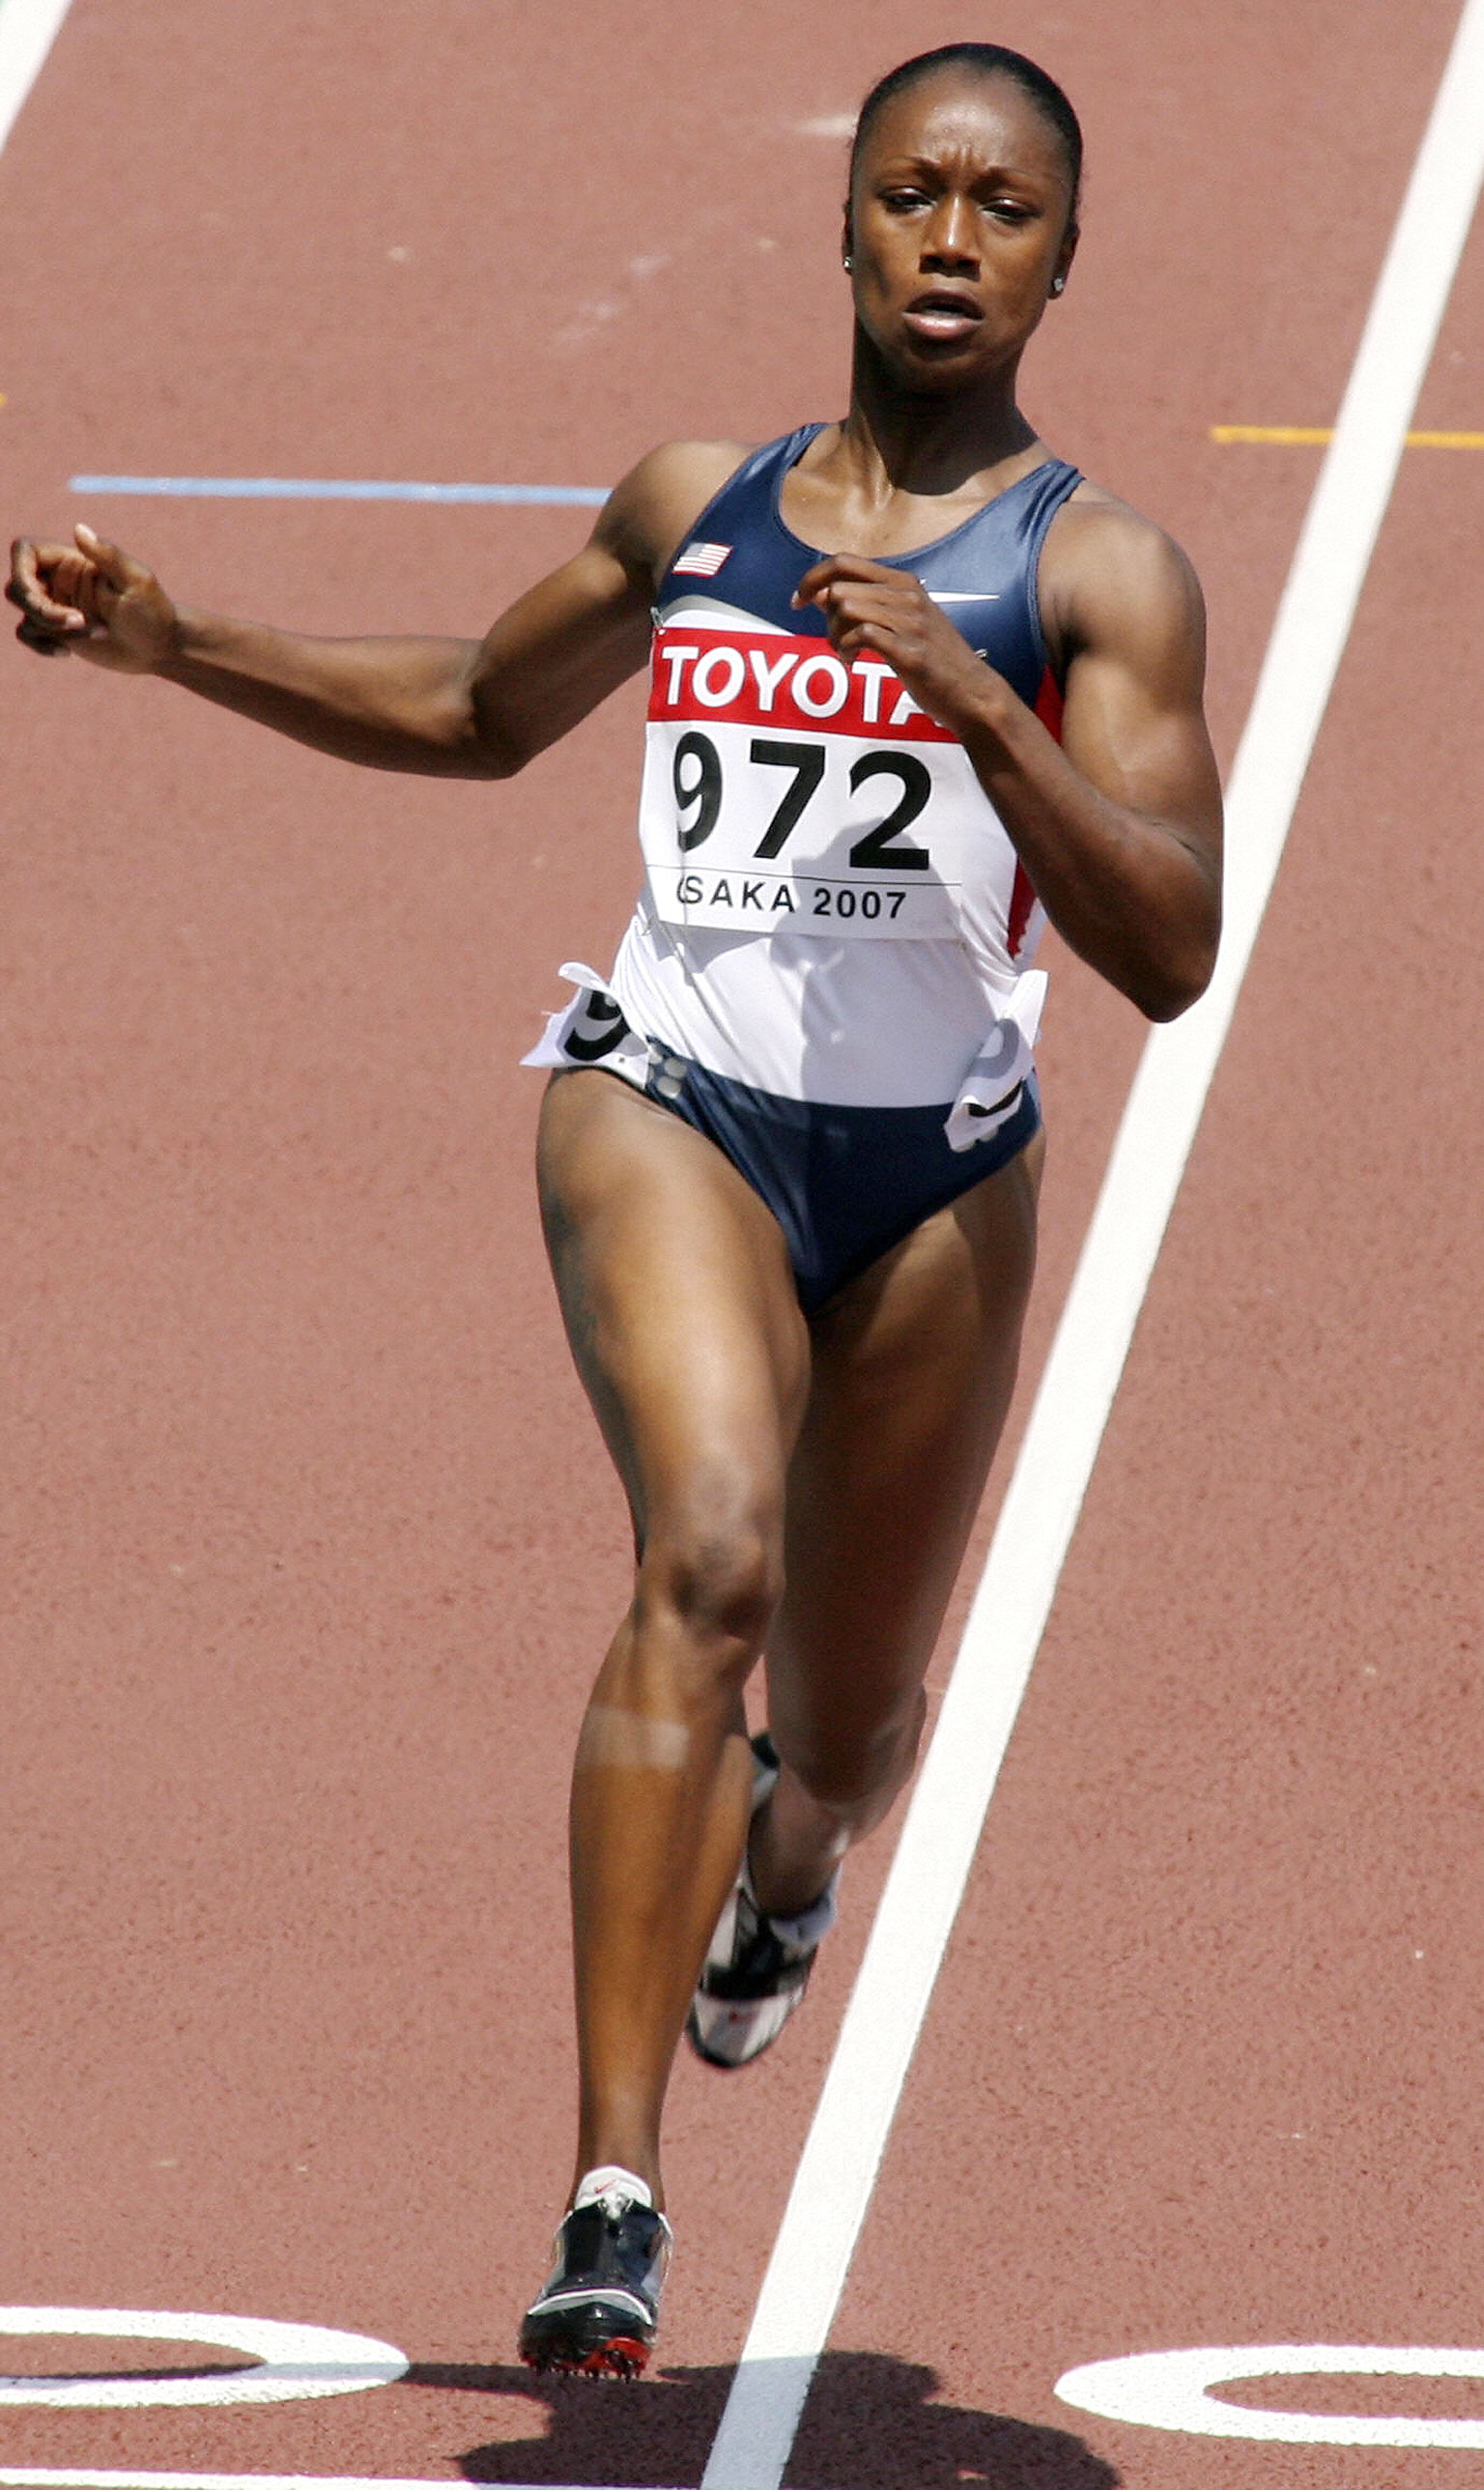 Competing in her first world championships in 2007, Carmelita Jeter raced to a bronze medal in the 100 meters in Japan.